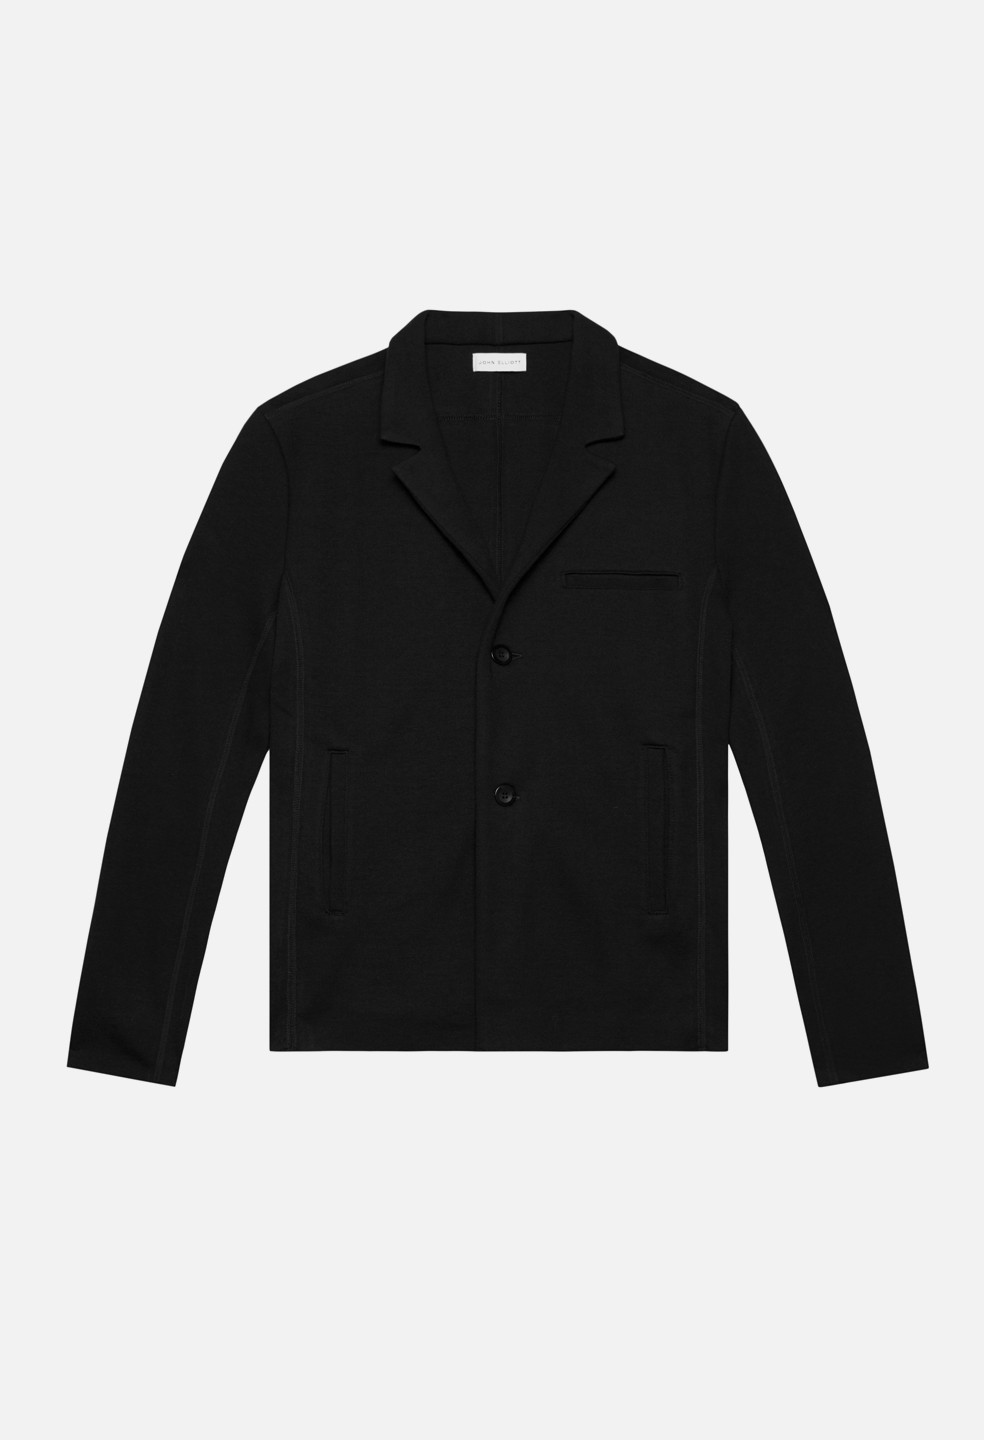 $350 at  Johnelliottco